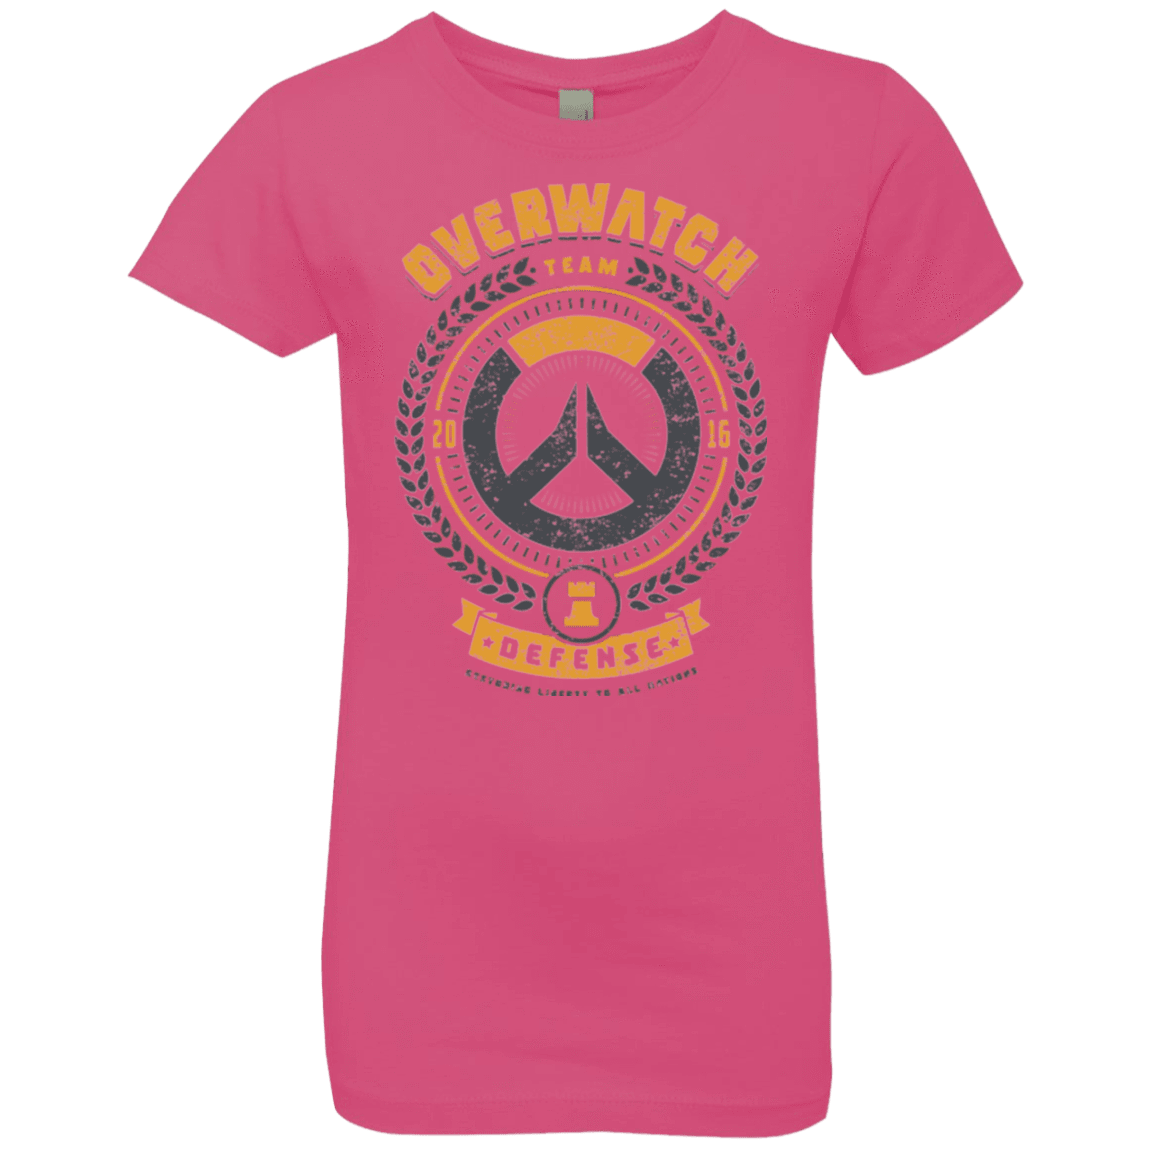 Defense Team Girls Premium T-Shirt